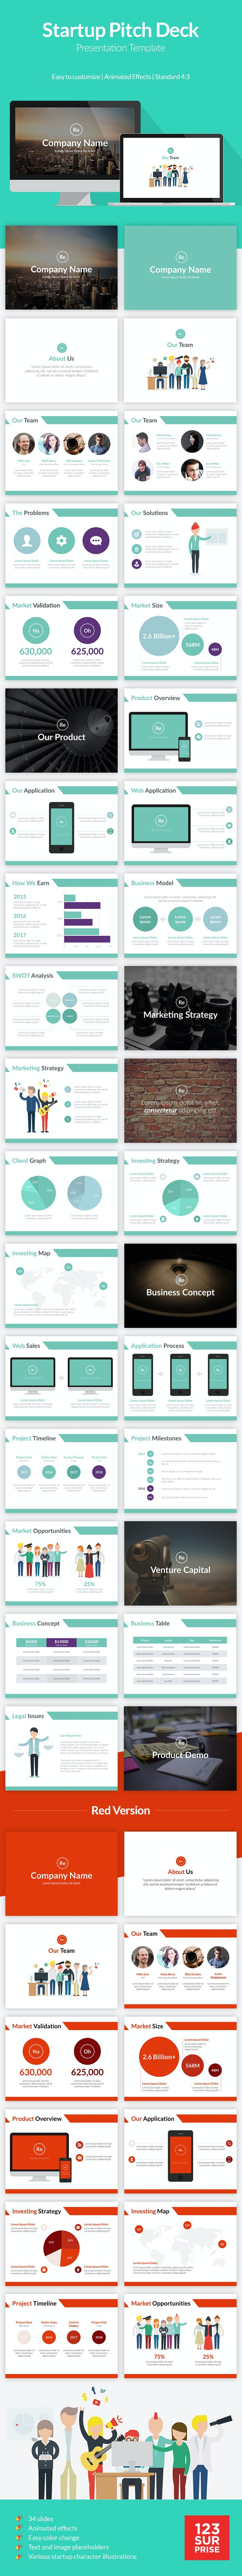 Startup Pitch Deck Template - Business Keynote Templates